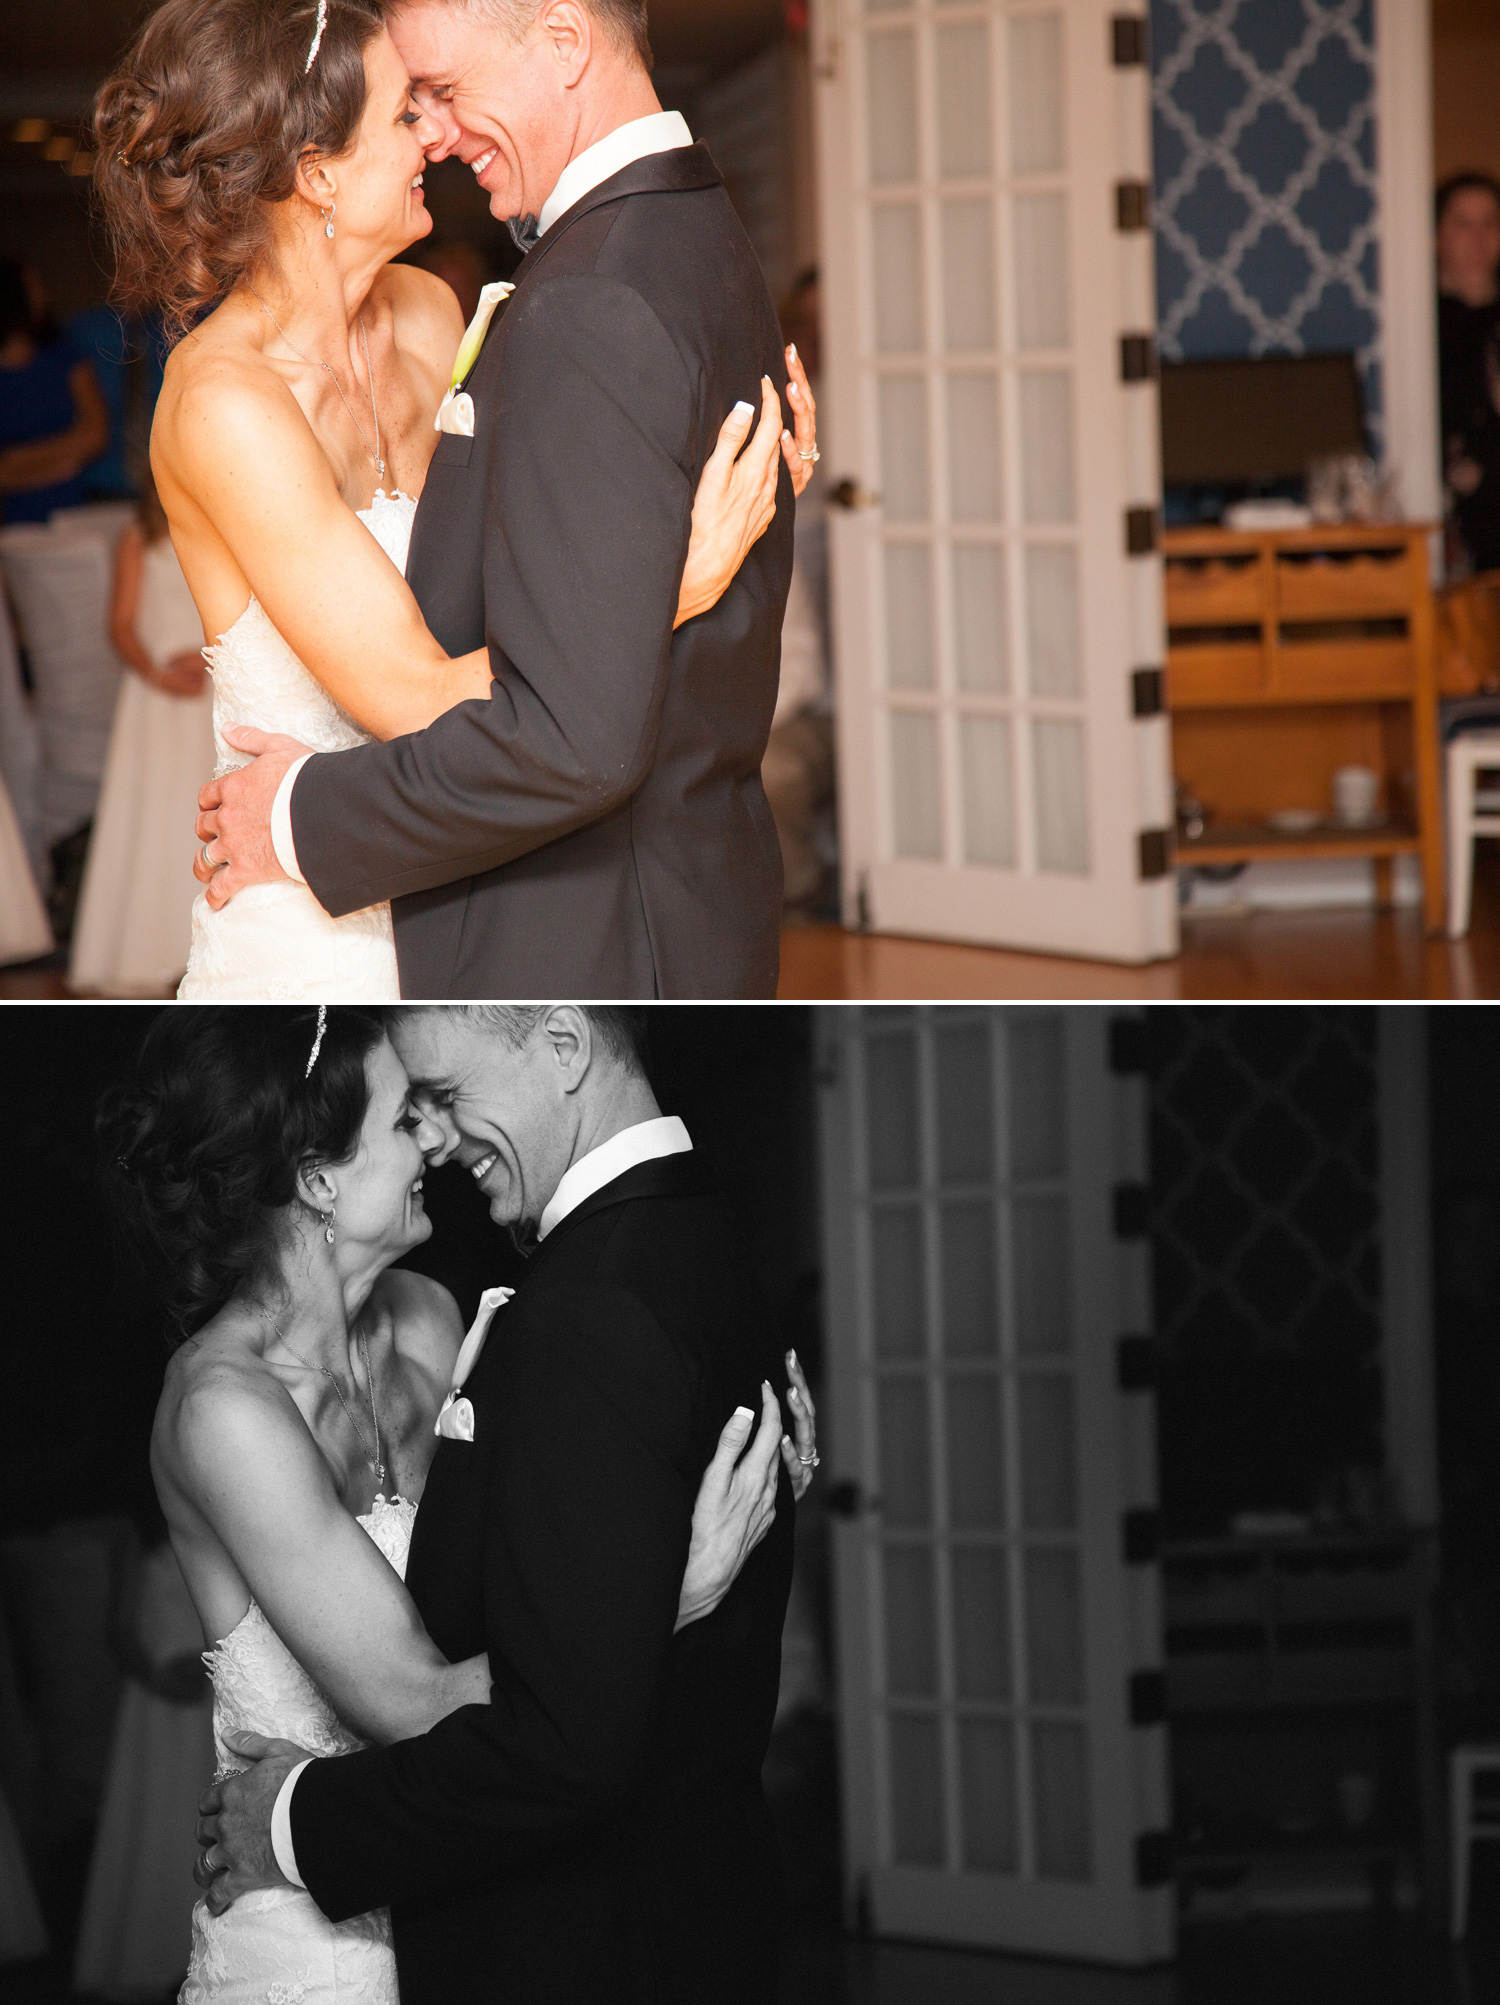 Another wonderfully intimate moment. On the dance floor, we usually have to use a lot of flash... here we've provided enough light to capture the action, but I wanted it to feel more timeless. Making the image black & white created a very classic feel and eliminated all of the background distractions.